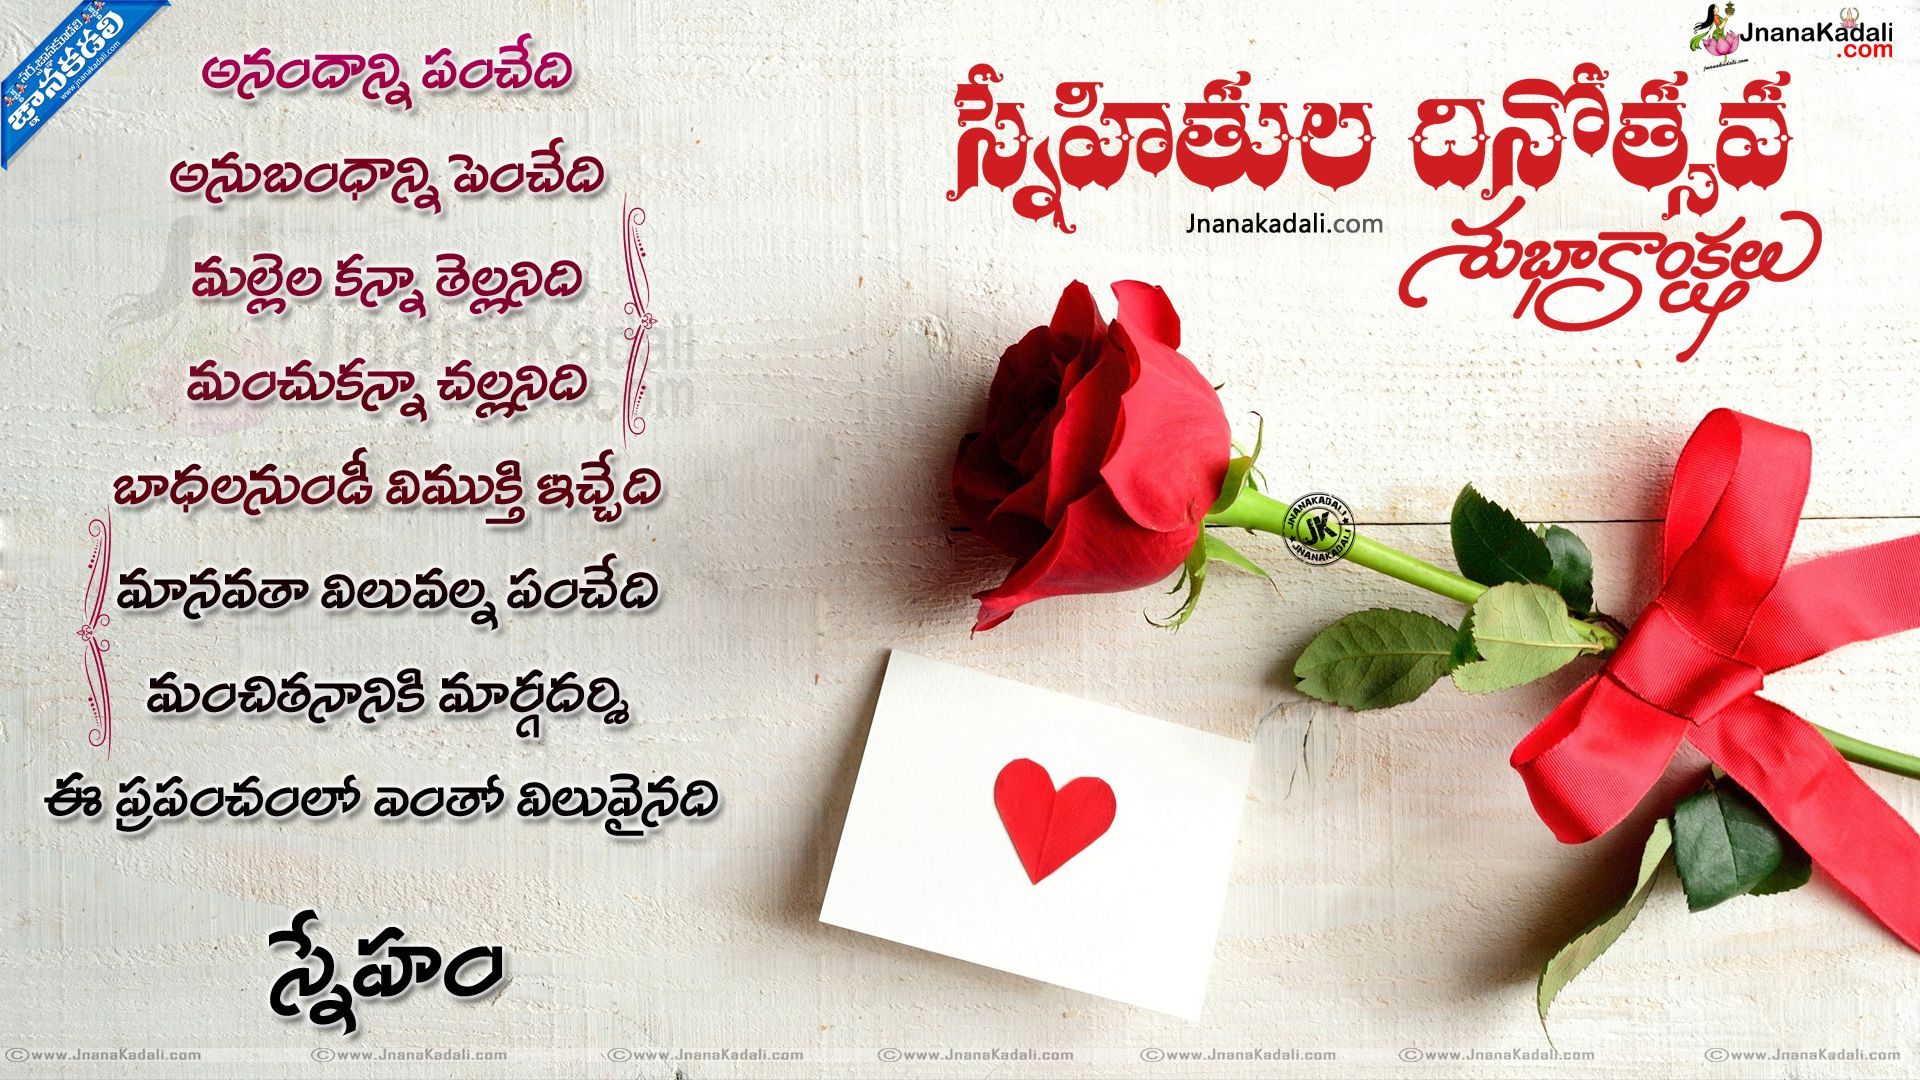 Friendship day telugu quotes wishes greetings images wallpapers friendship day telugu quotes wishes greetings images wallpapers pictures friendship day pictures in telugu friendship altavistaventures Image collections